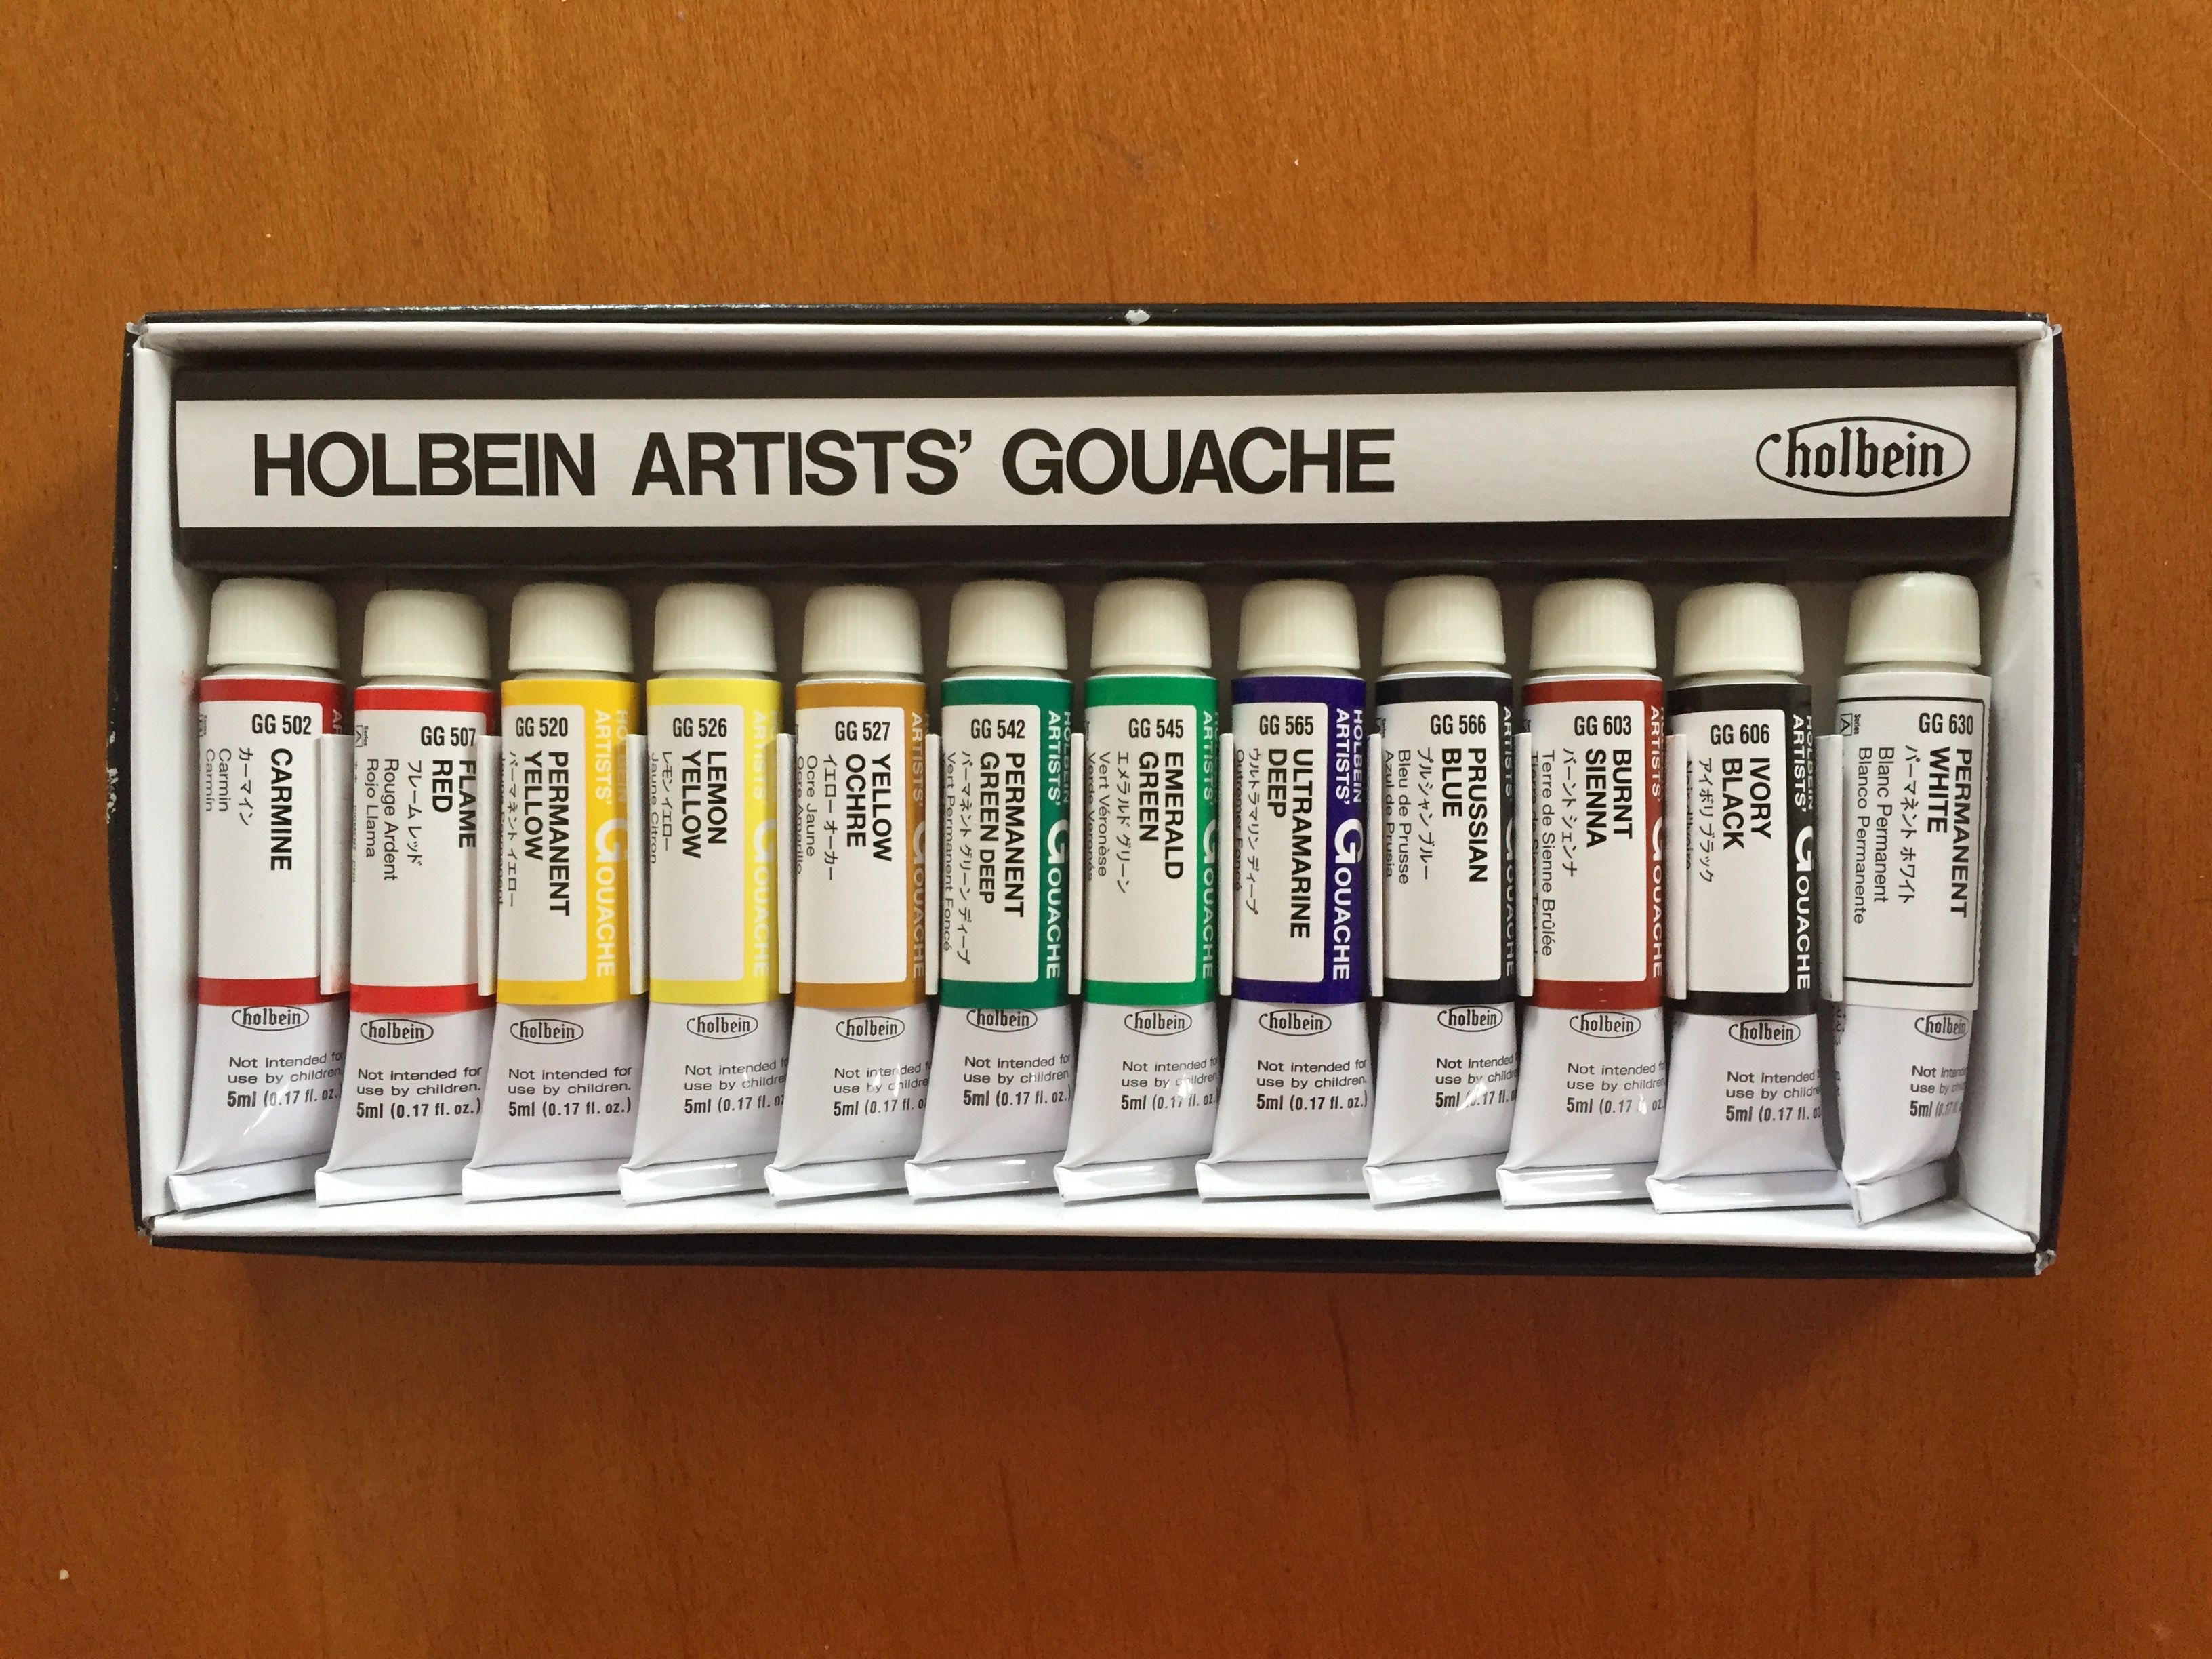 The Characteristics and Versatility of Gouache Paint